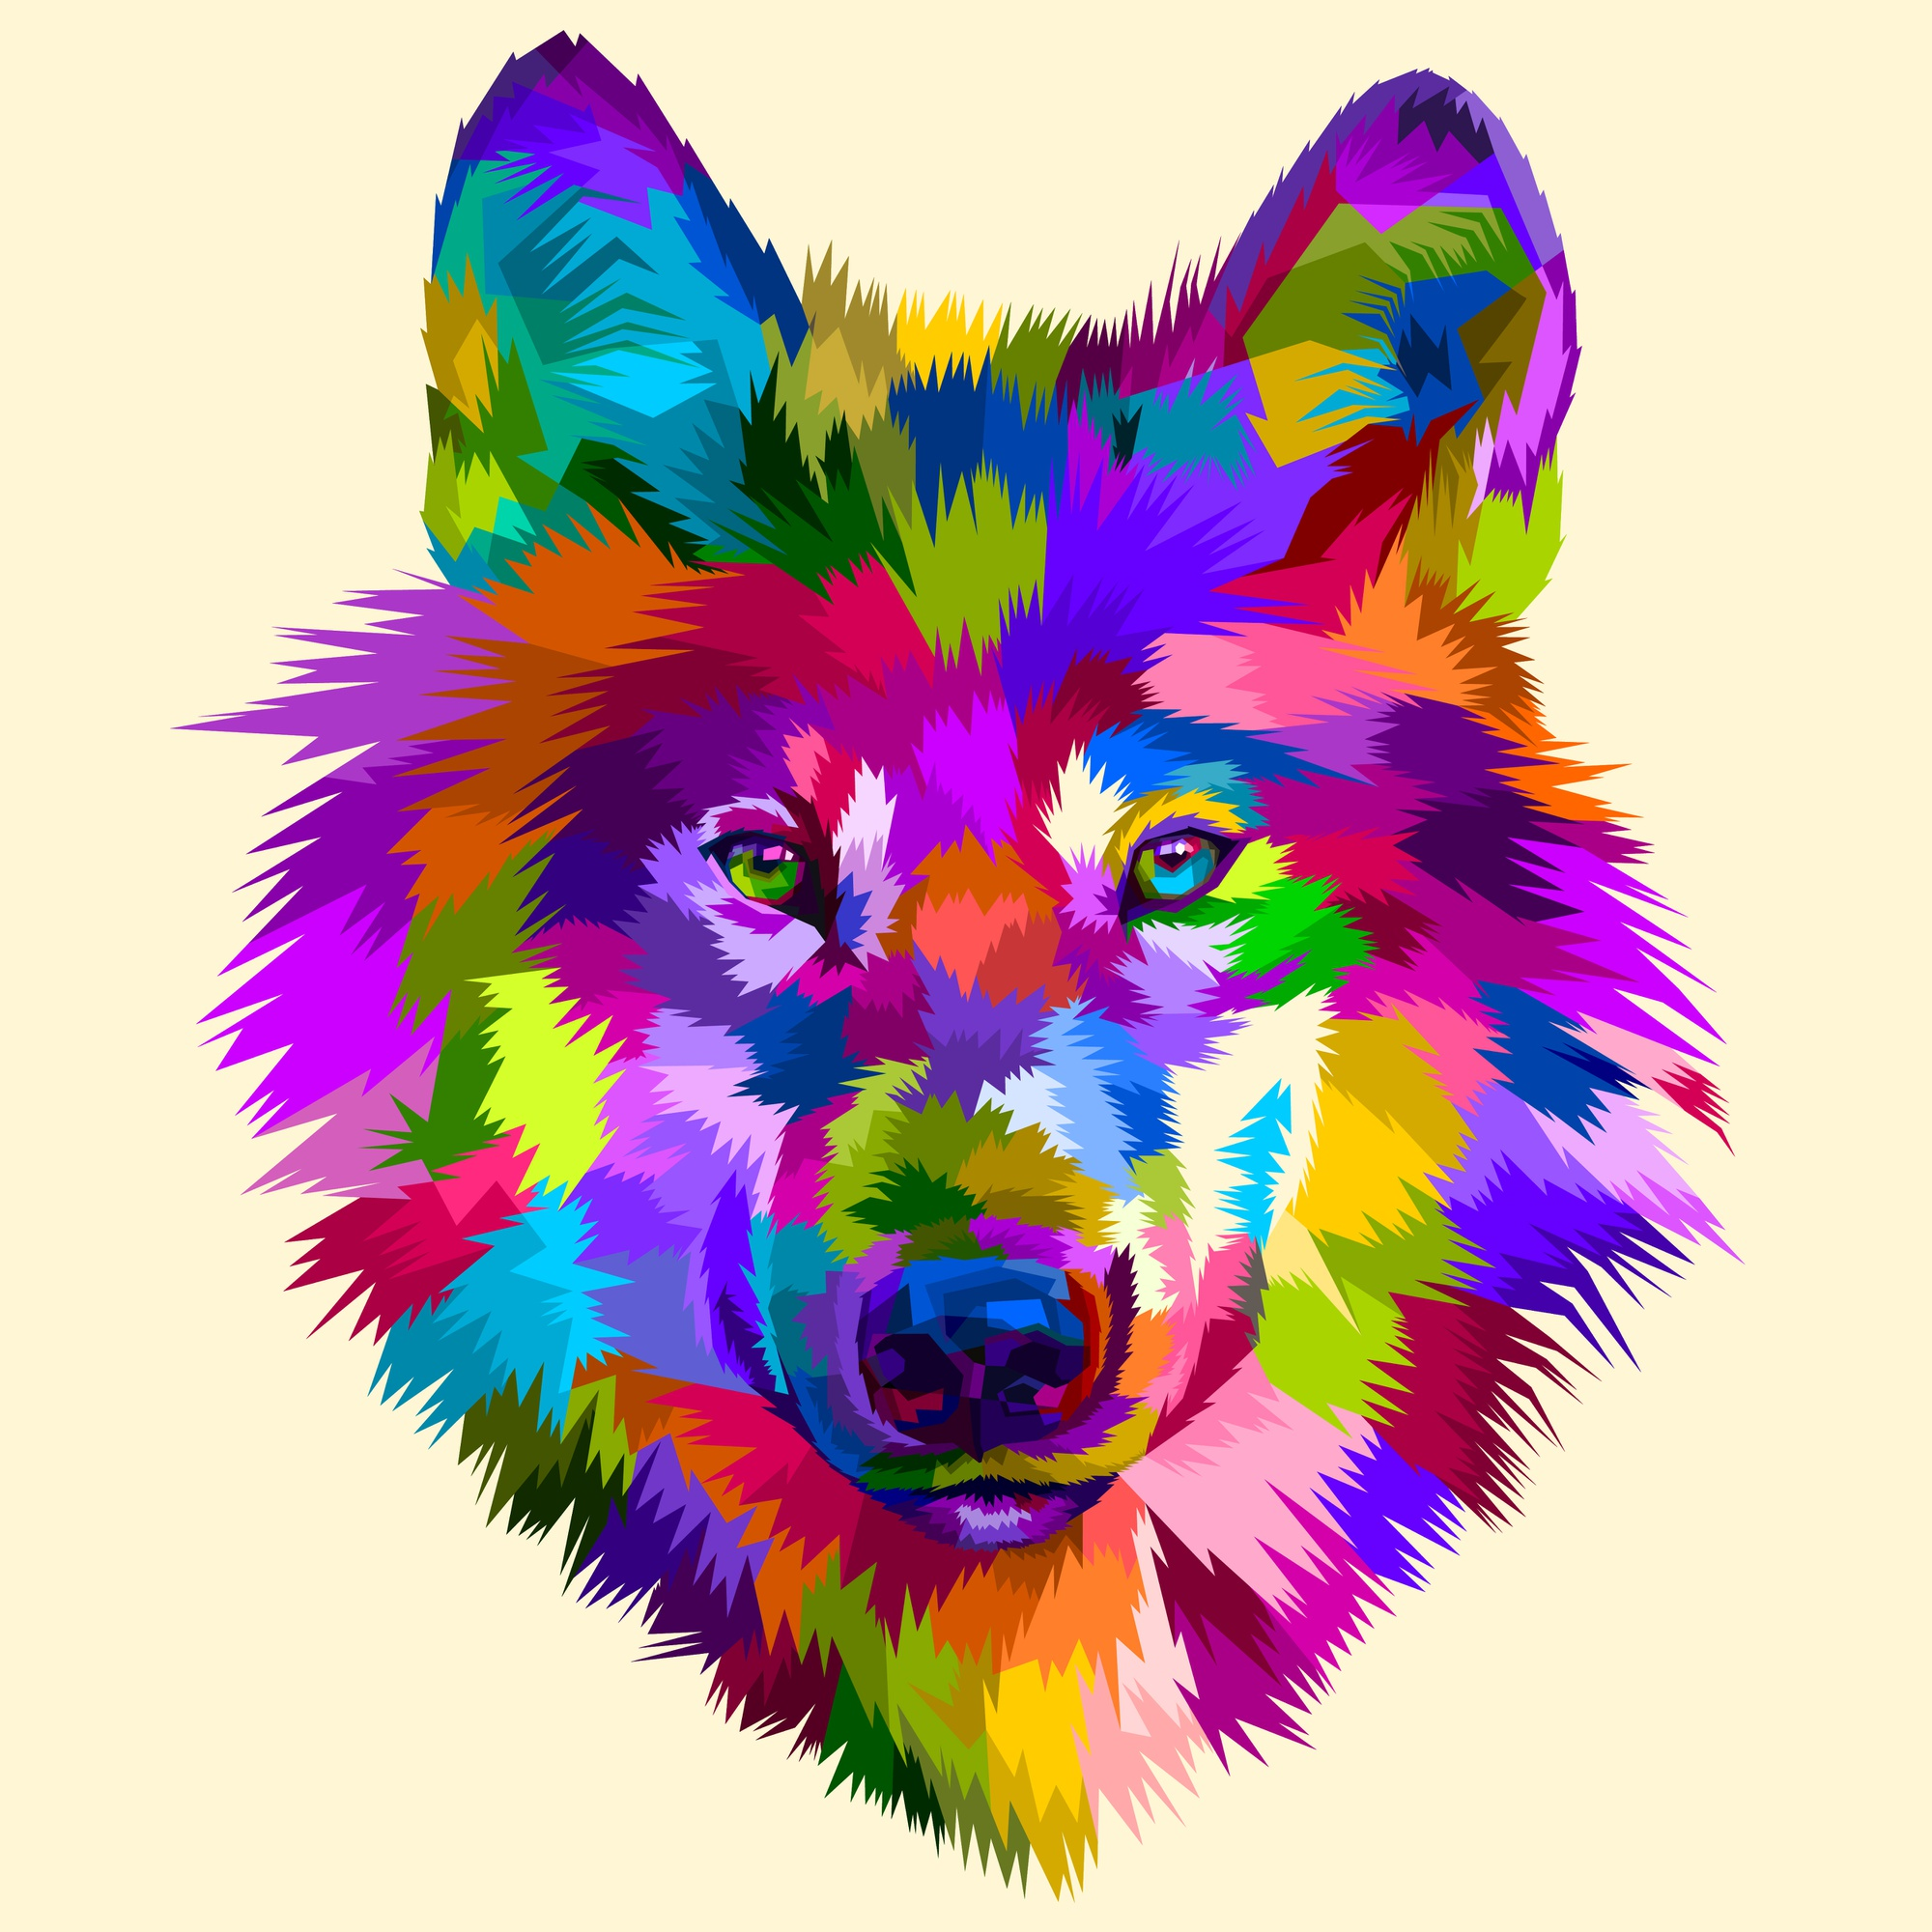 Colorful wolf head icon on pop art style